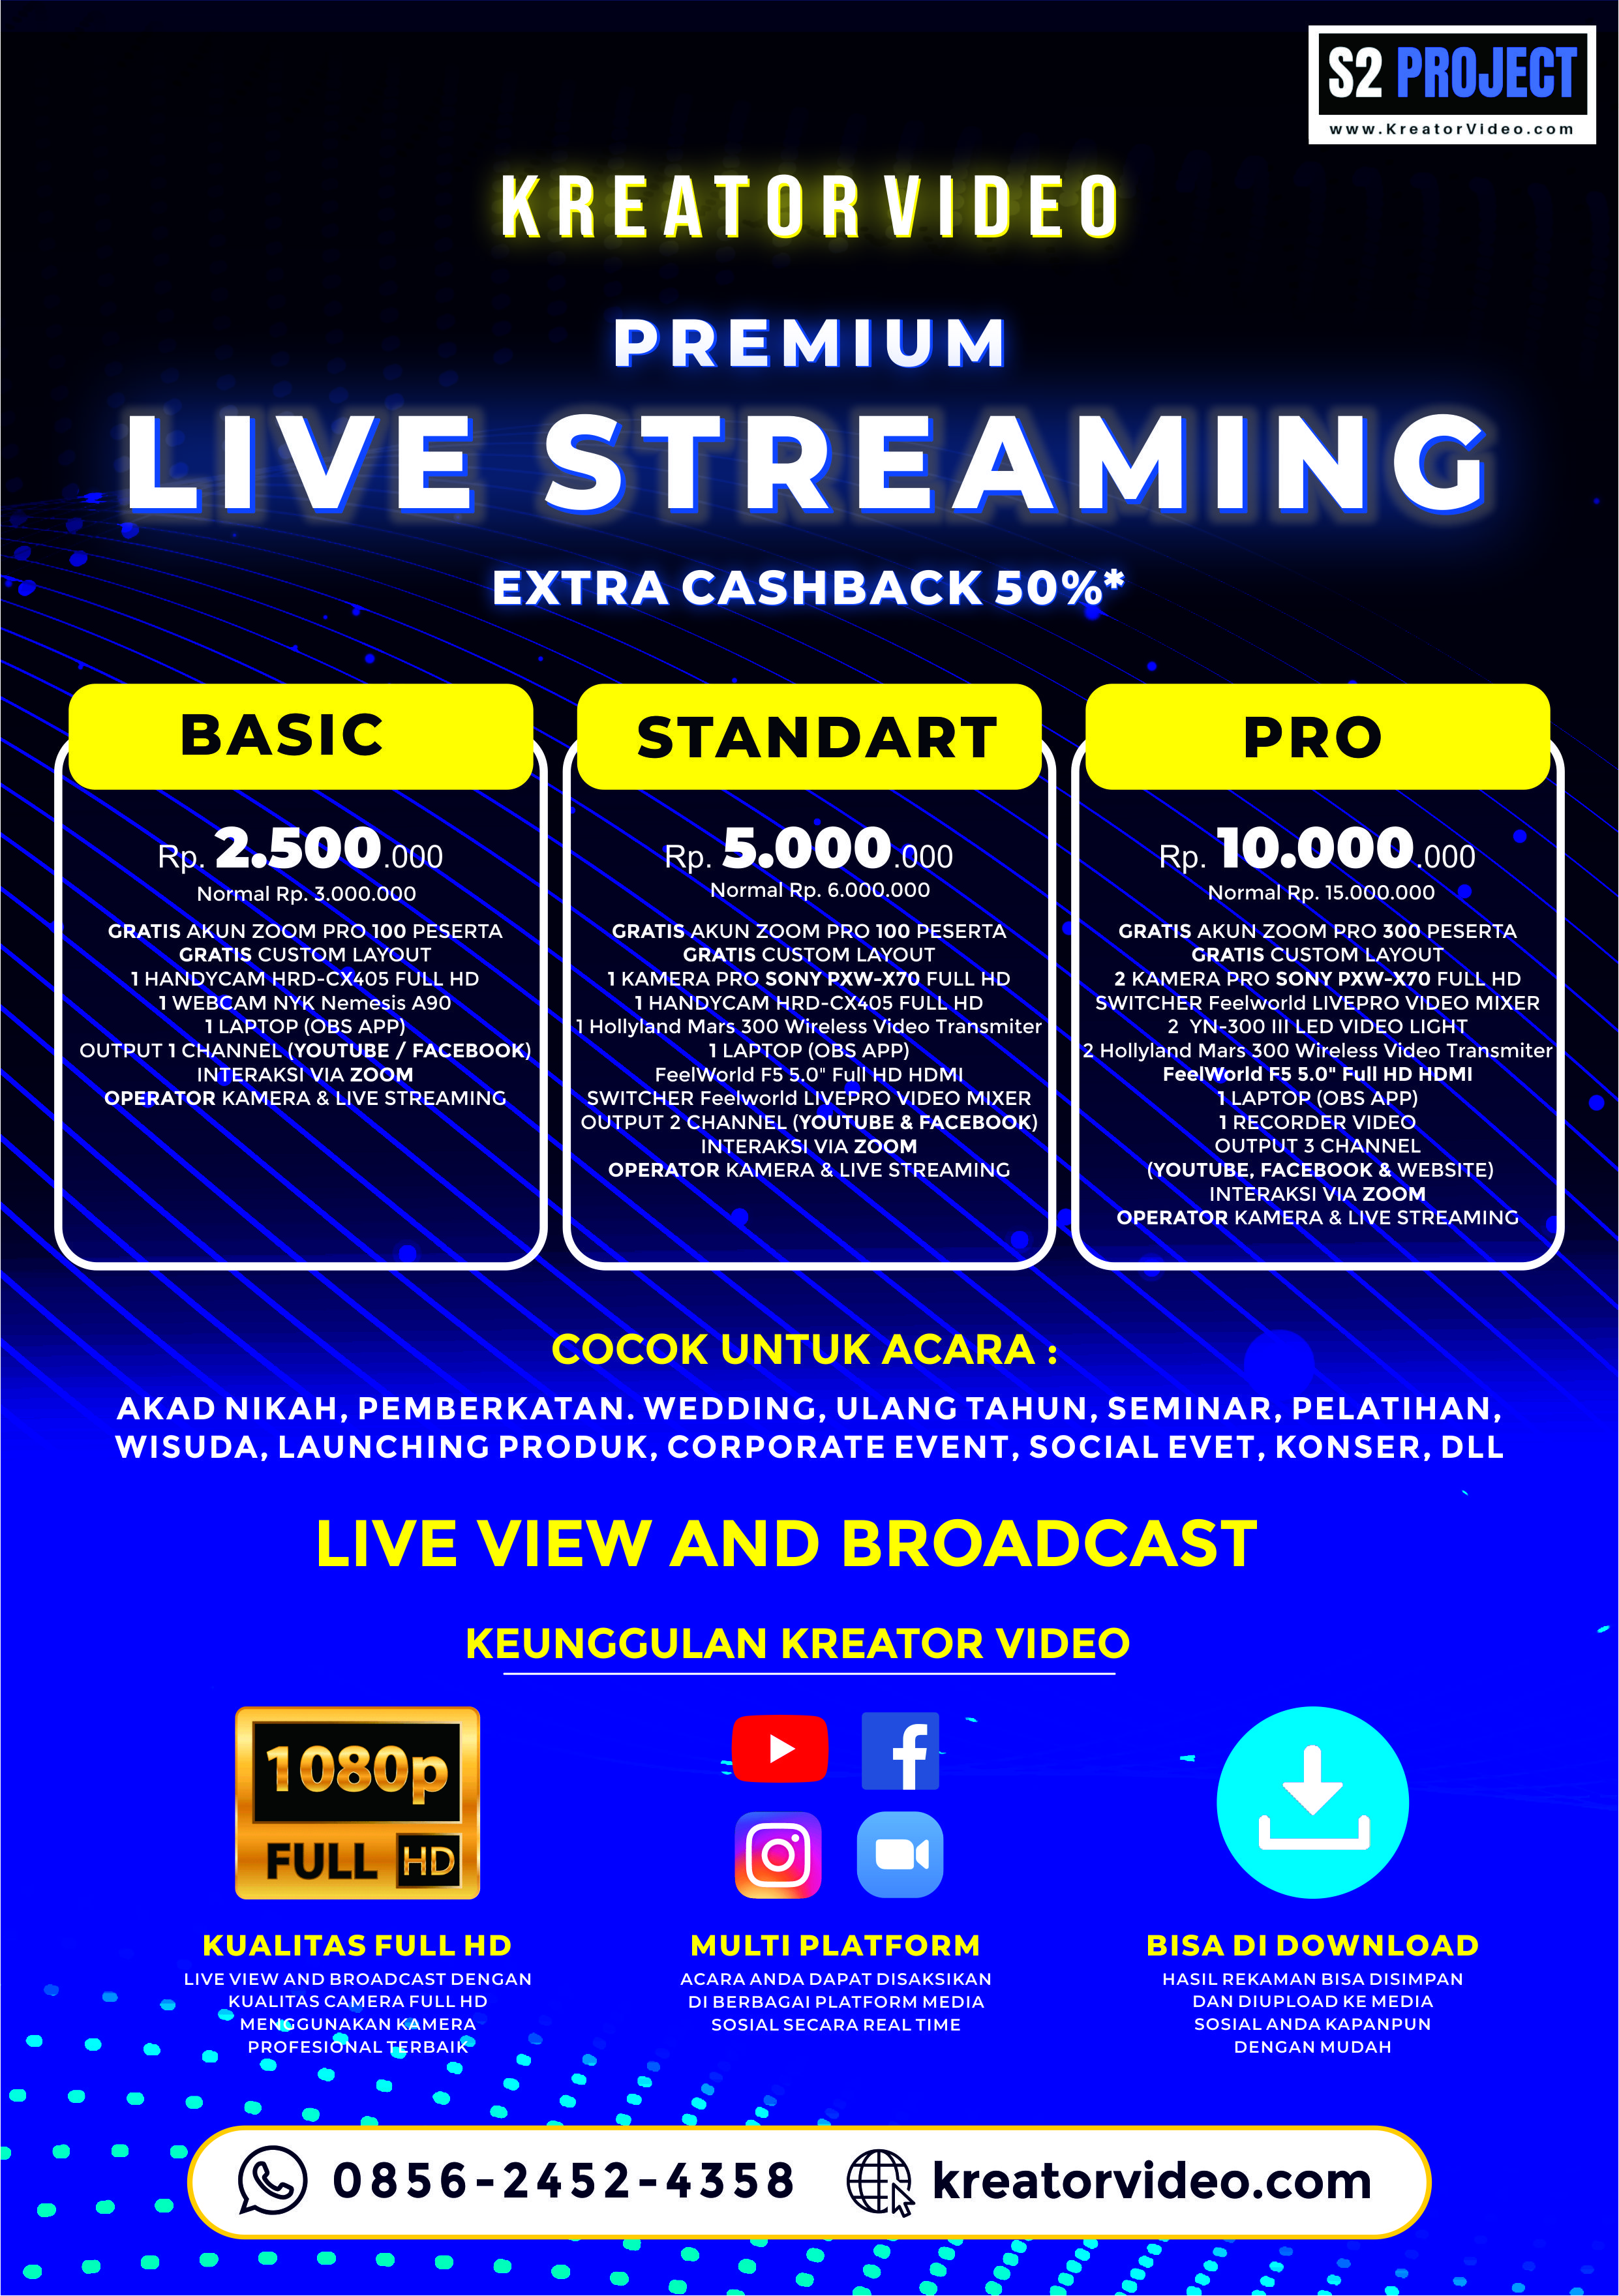 Live View And Broadcast   Live Streaming   Kreator Video Bandung